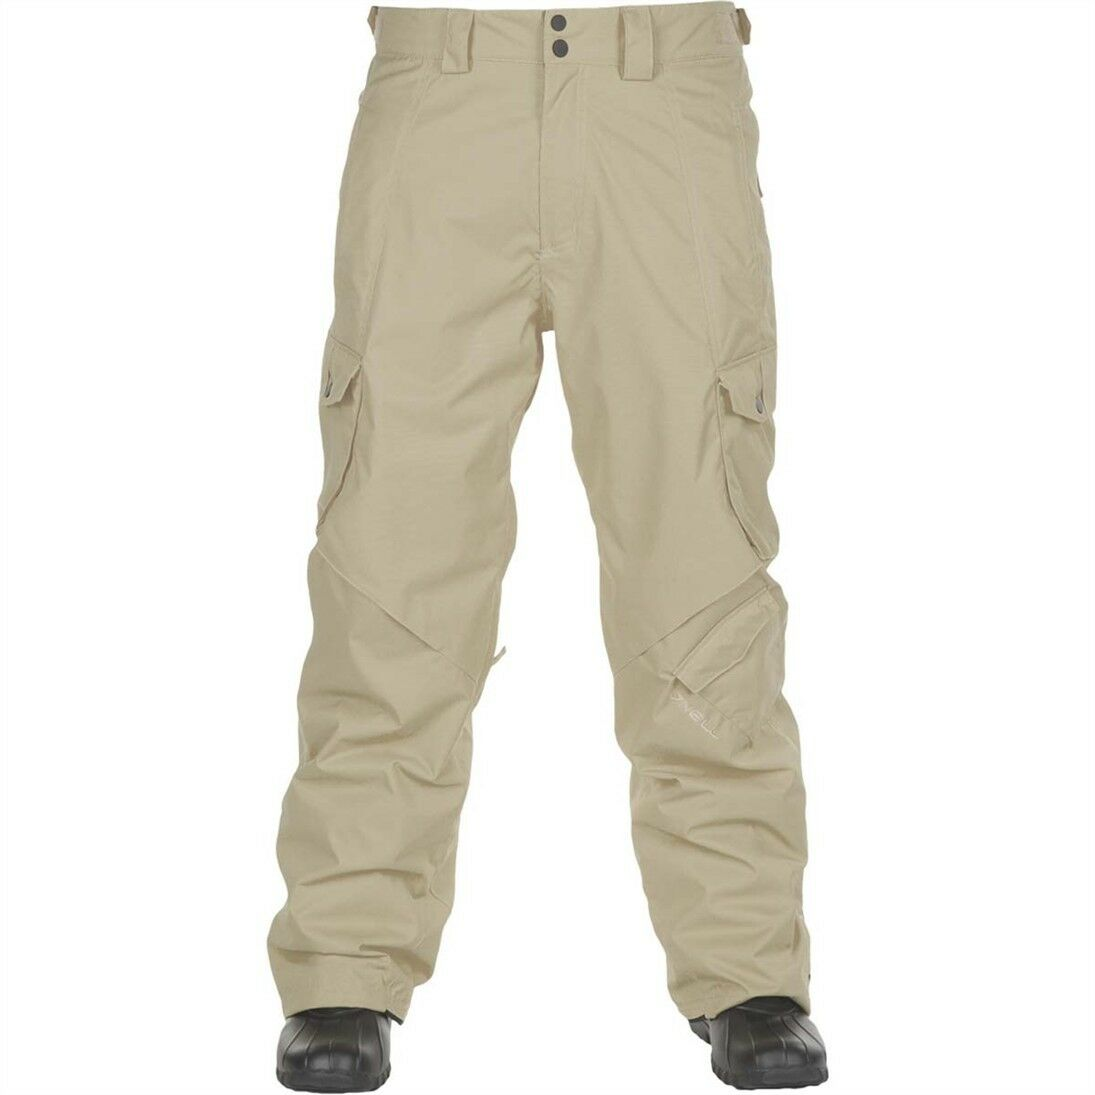 BRAND NEW WITH TAGS O'Neill EXALT Snowboard Ski Pant   NO BEIGE MEDIUM-2XLARGE  quick answers